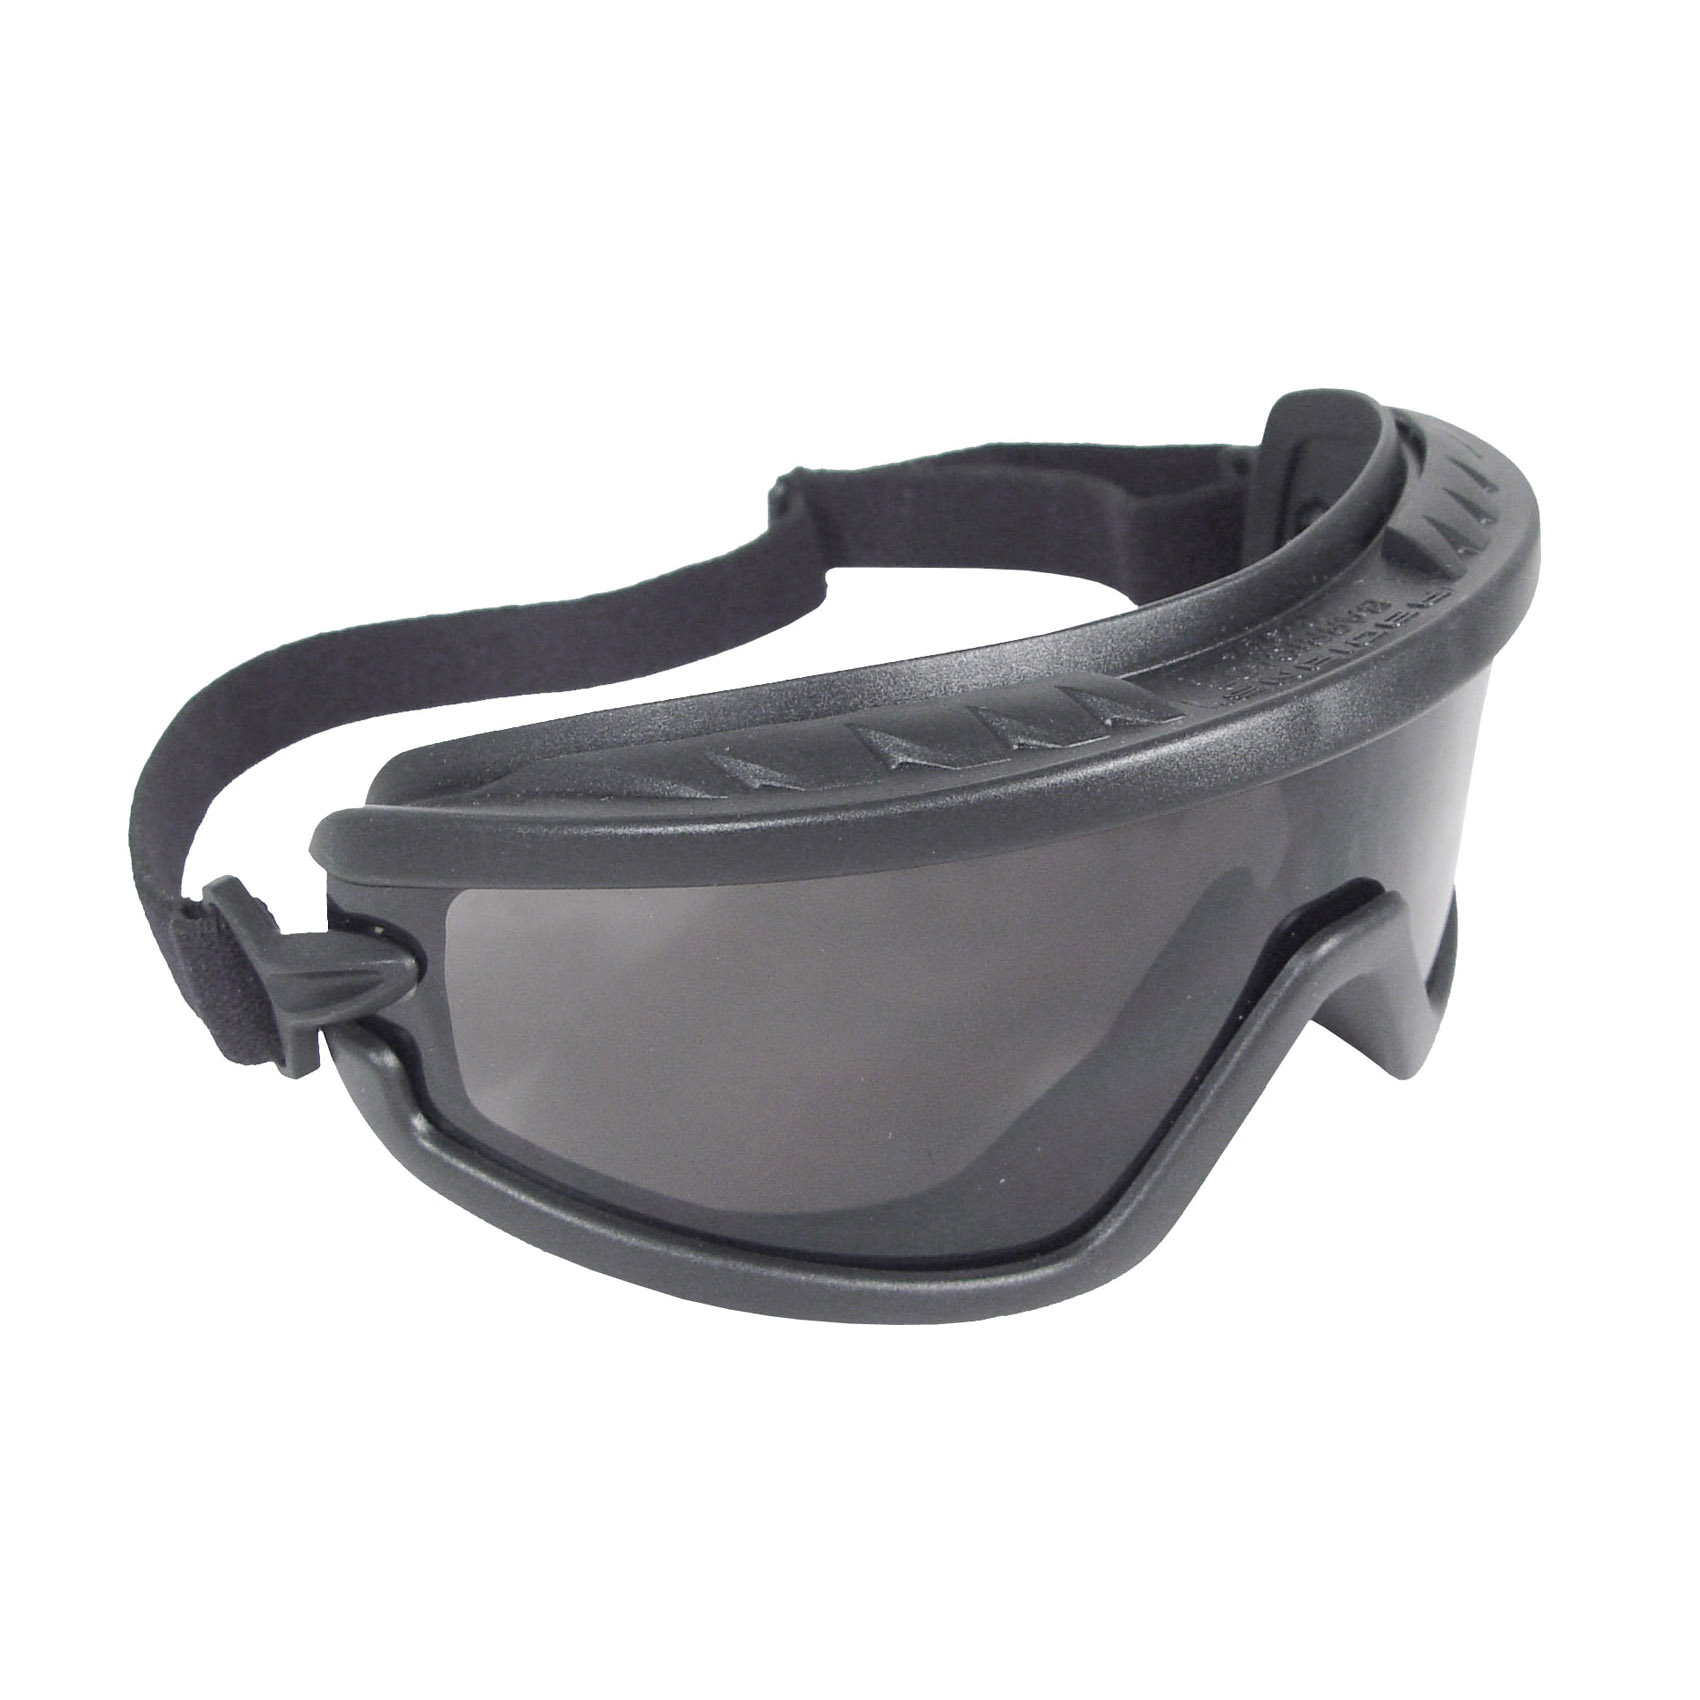 Radians® Barricade™ BG1-11 Indirect Vent Protective Goggles, Anti-Fog Clear Polycarbonate Lens, 99.9 % UV Protection, Elastic Strap, ANSI Z87.1+